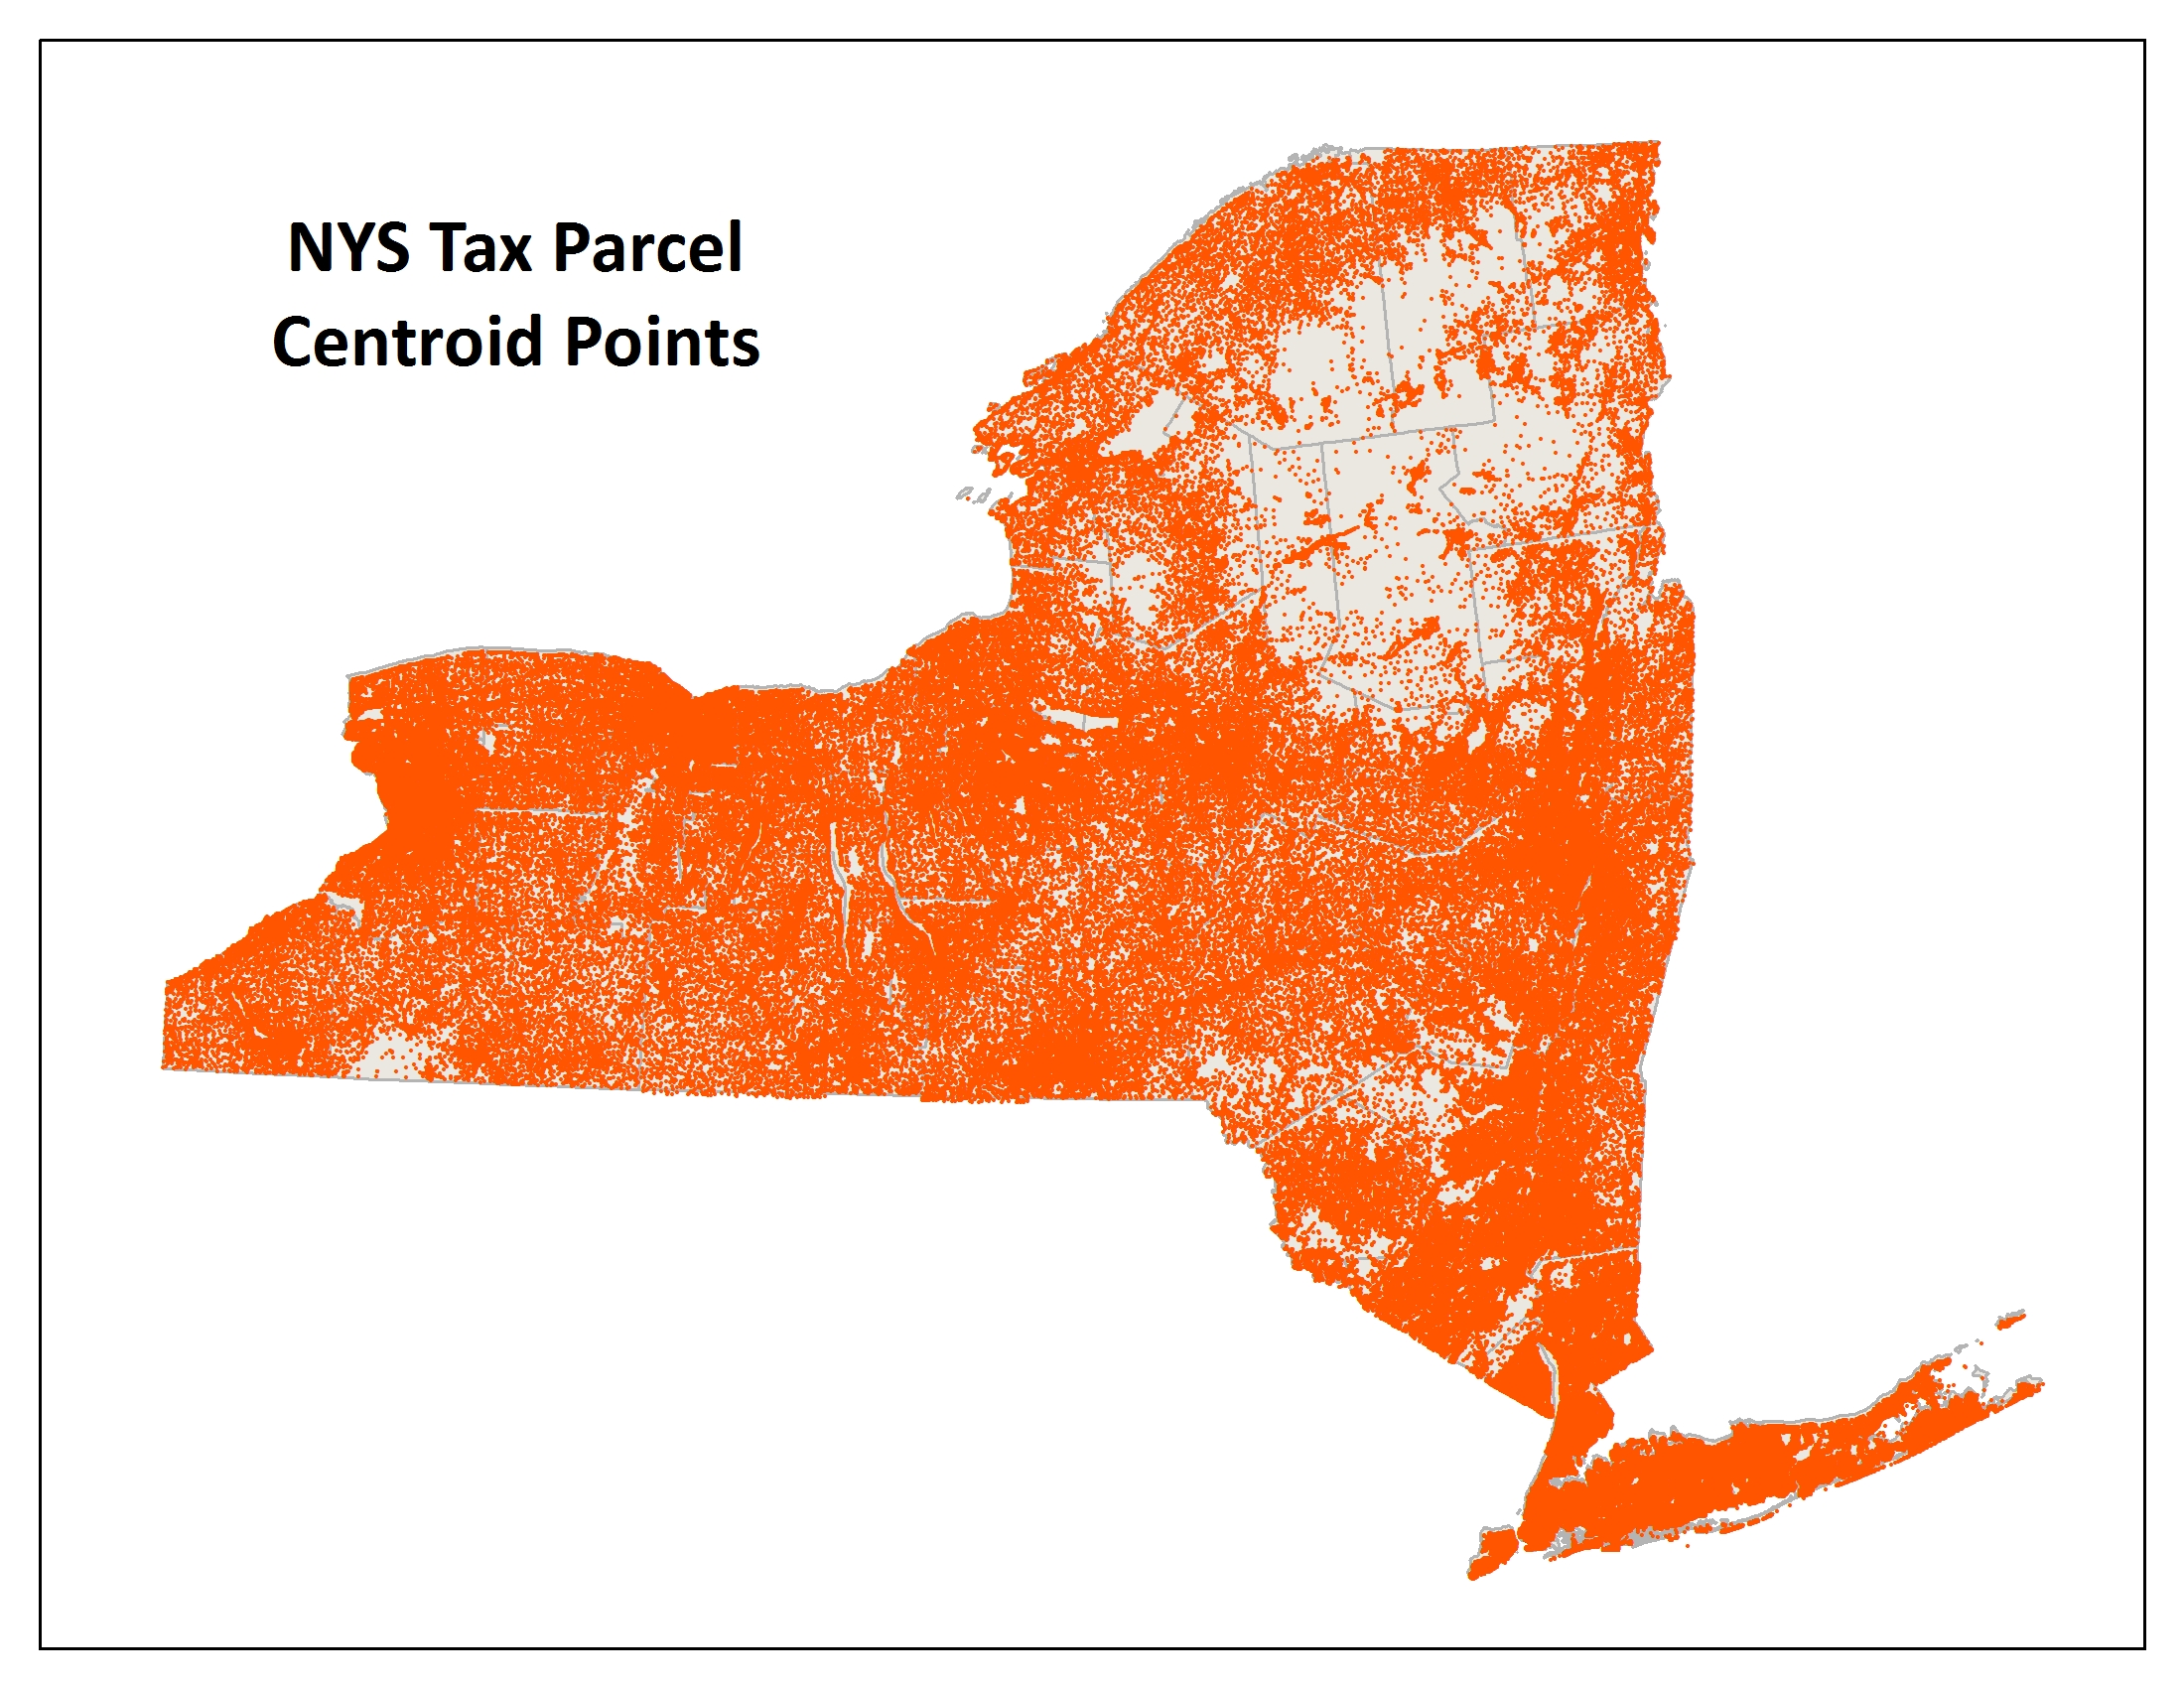 2014 Oneida County Tax Rolls - Nys tax parcel centroid points